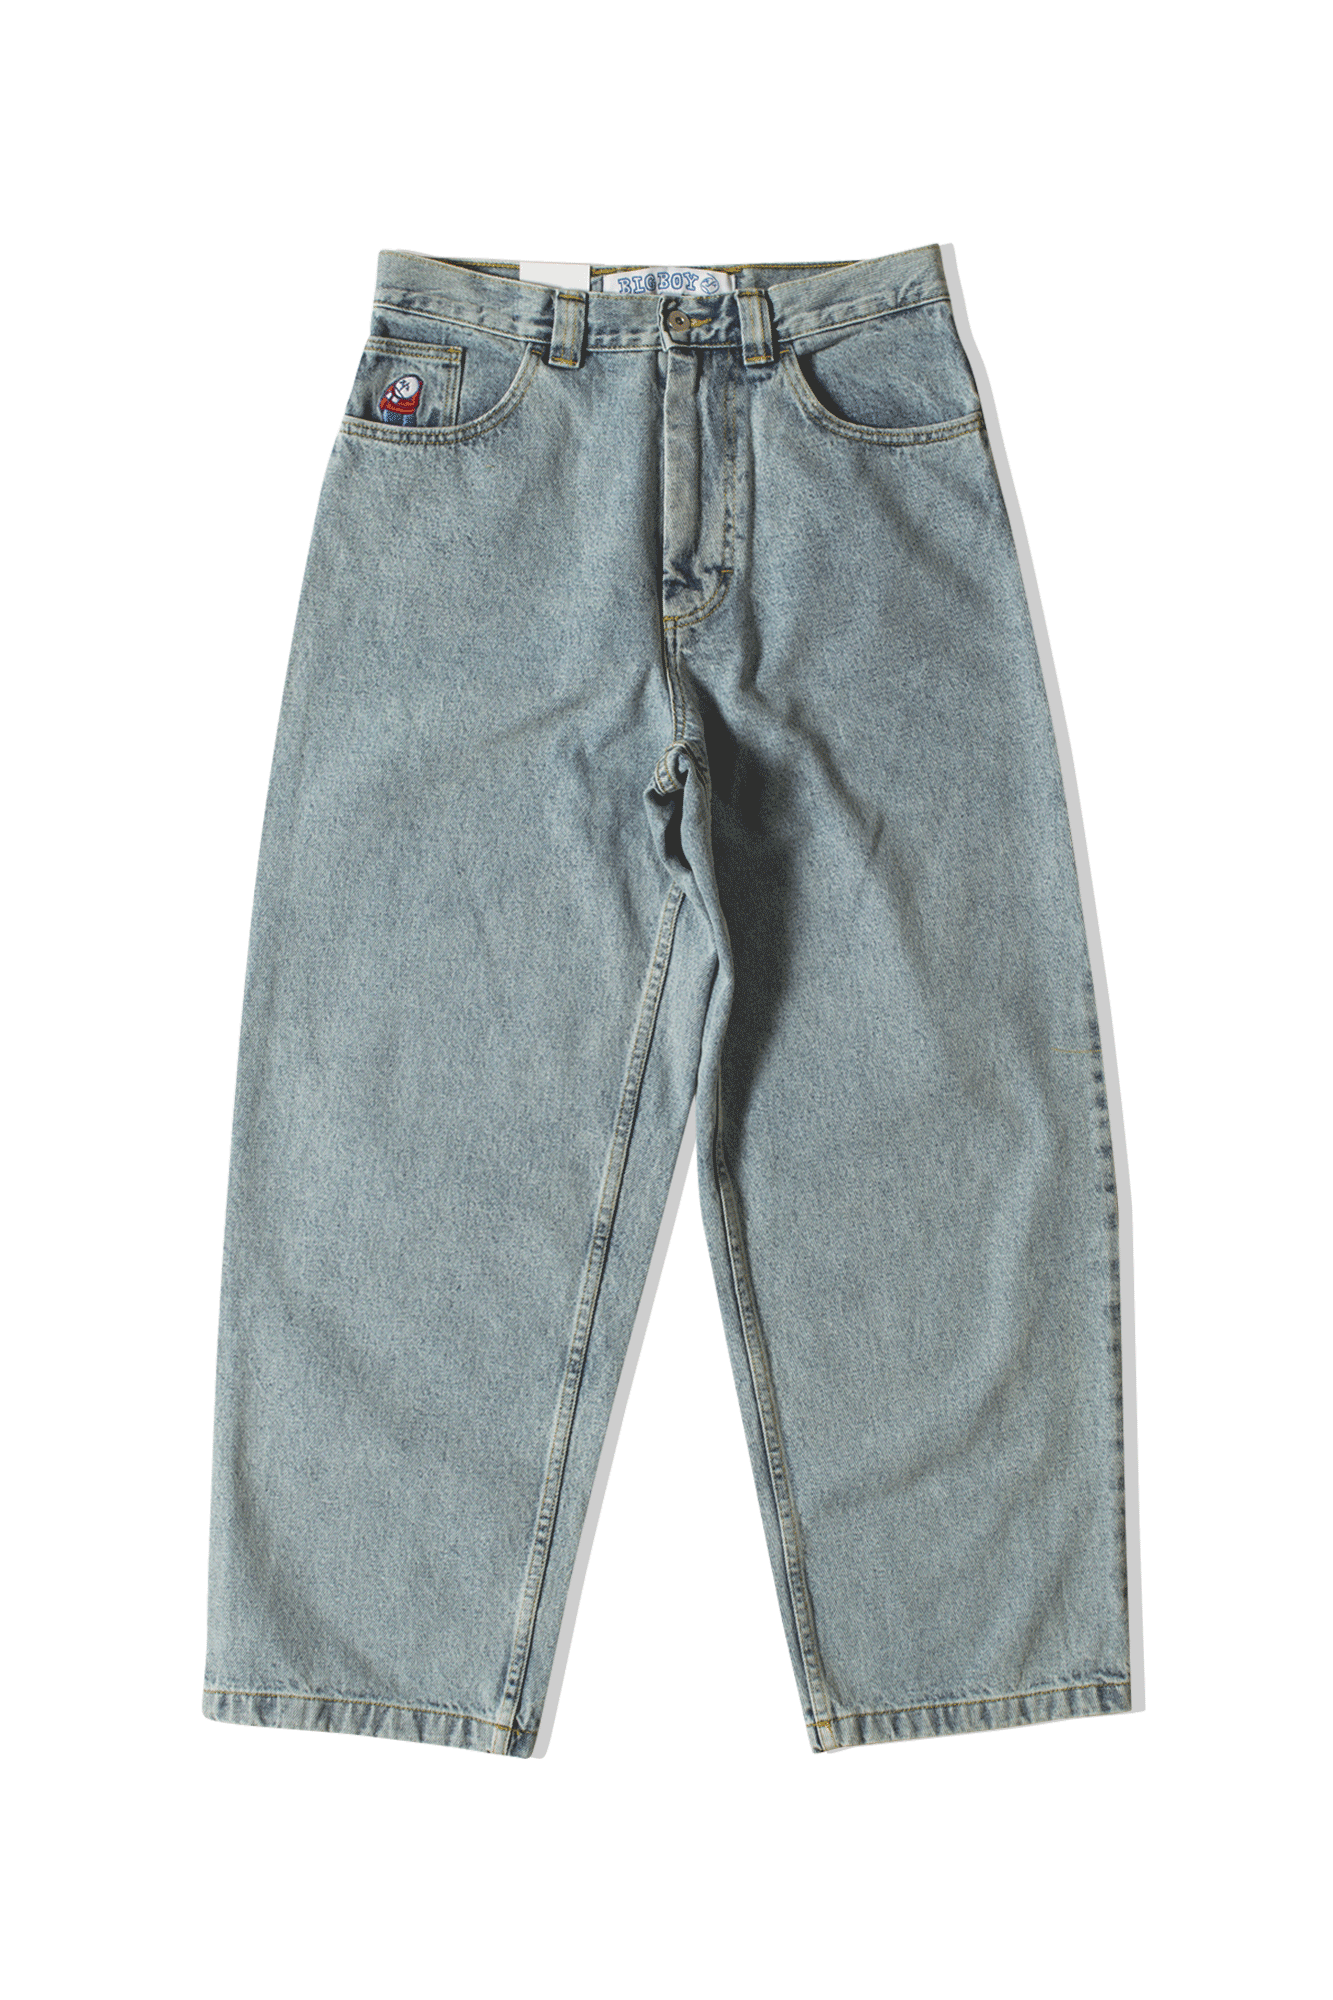 Polar Denim Big Boy Jeans Blue POL-BIGBOY#LBLUE#LBLUE#S - One Block Down